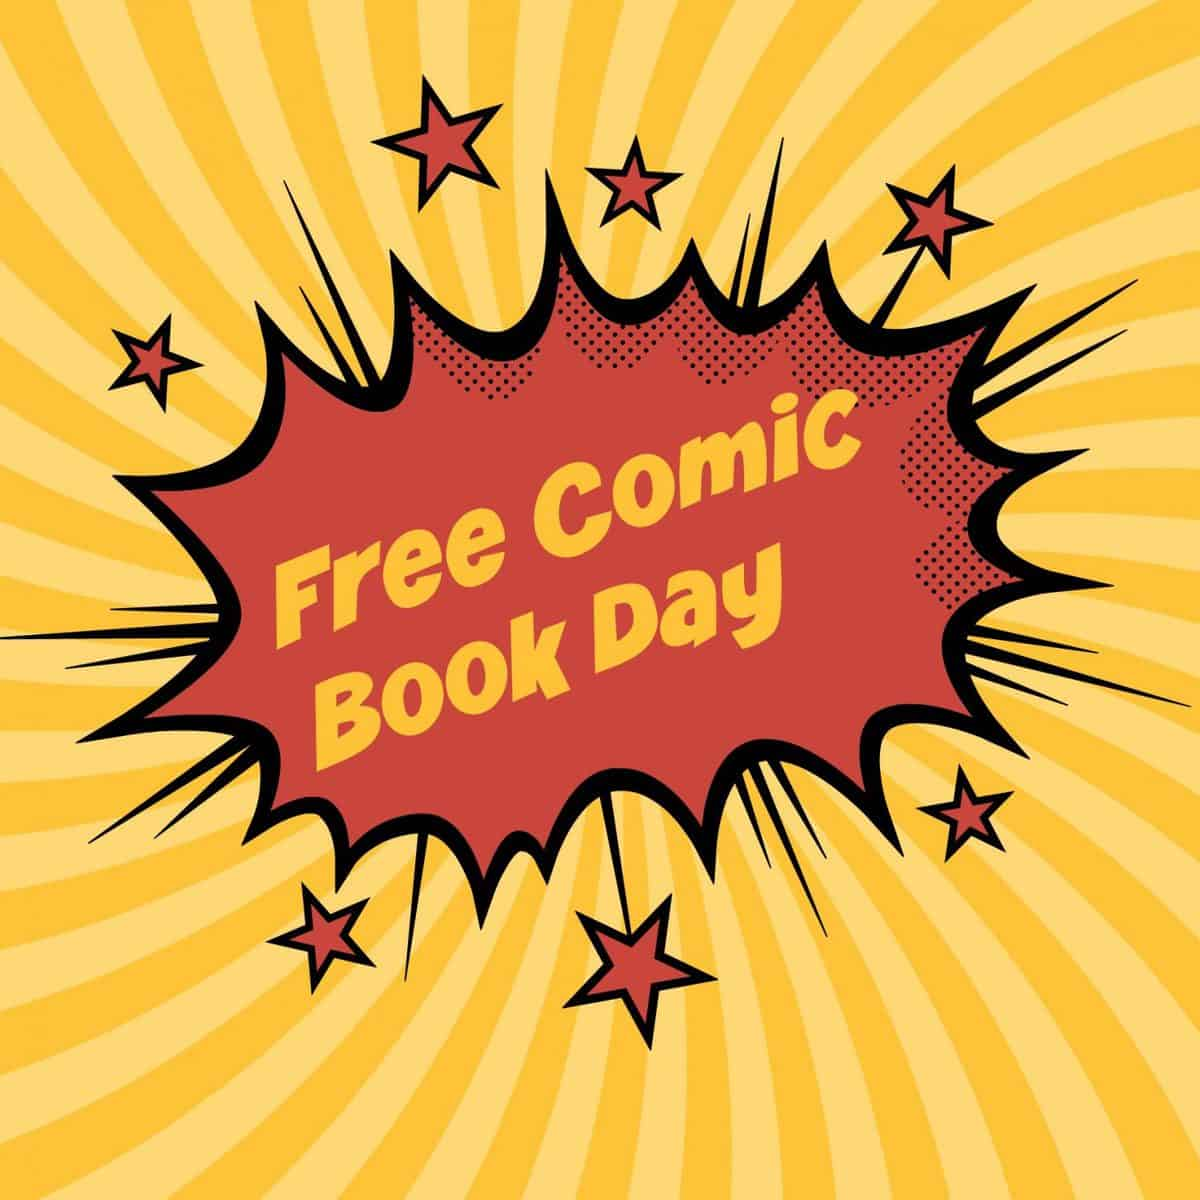 Free Comic Book Day 2018 Krypton: Ann Arbor Free Comic Book Day 2017